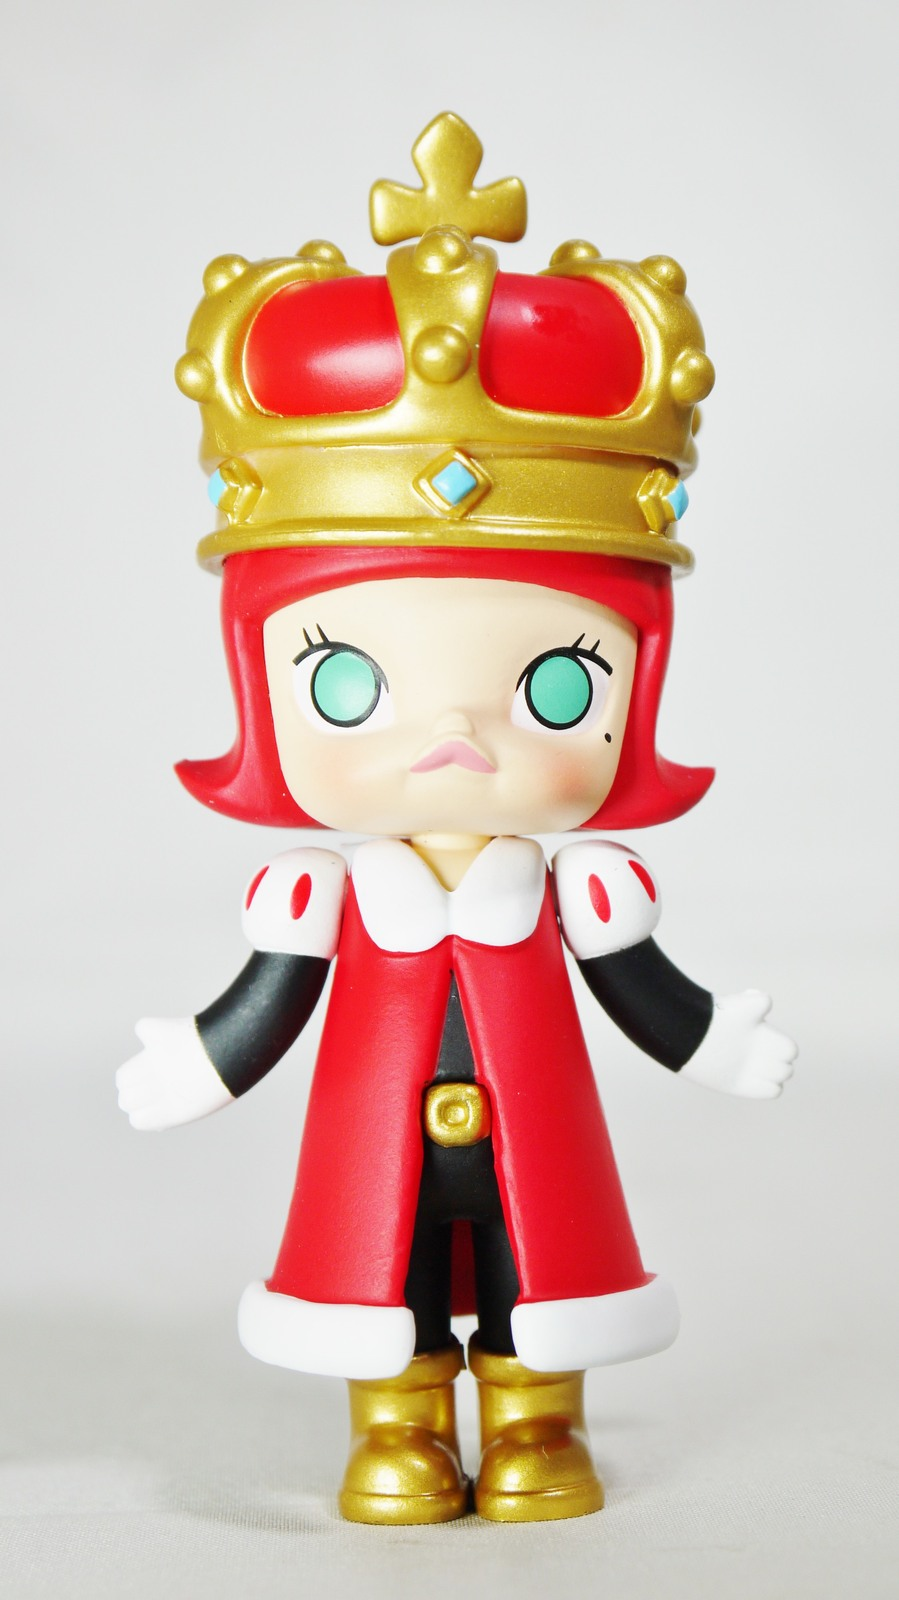 Pop mart kennyswork molly chess club checkmate king red 01